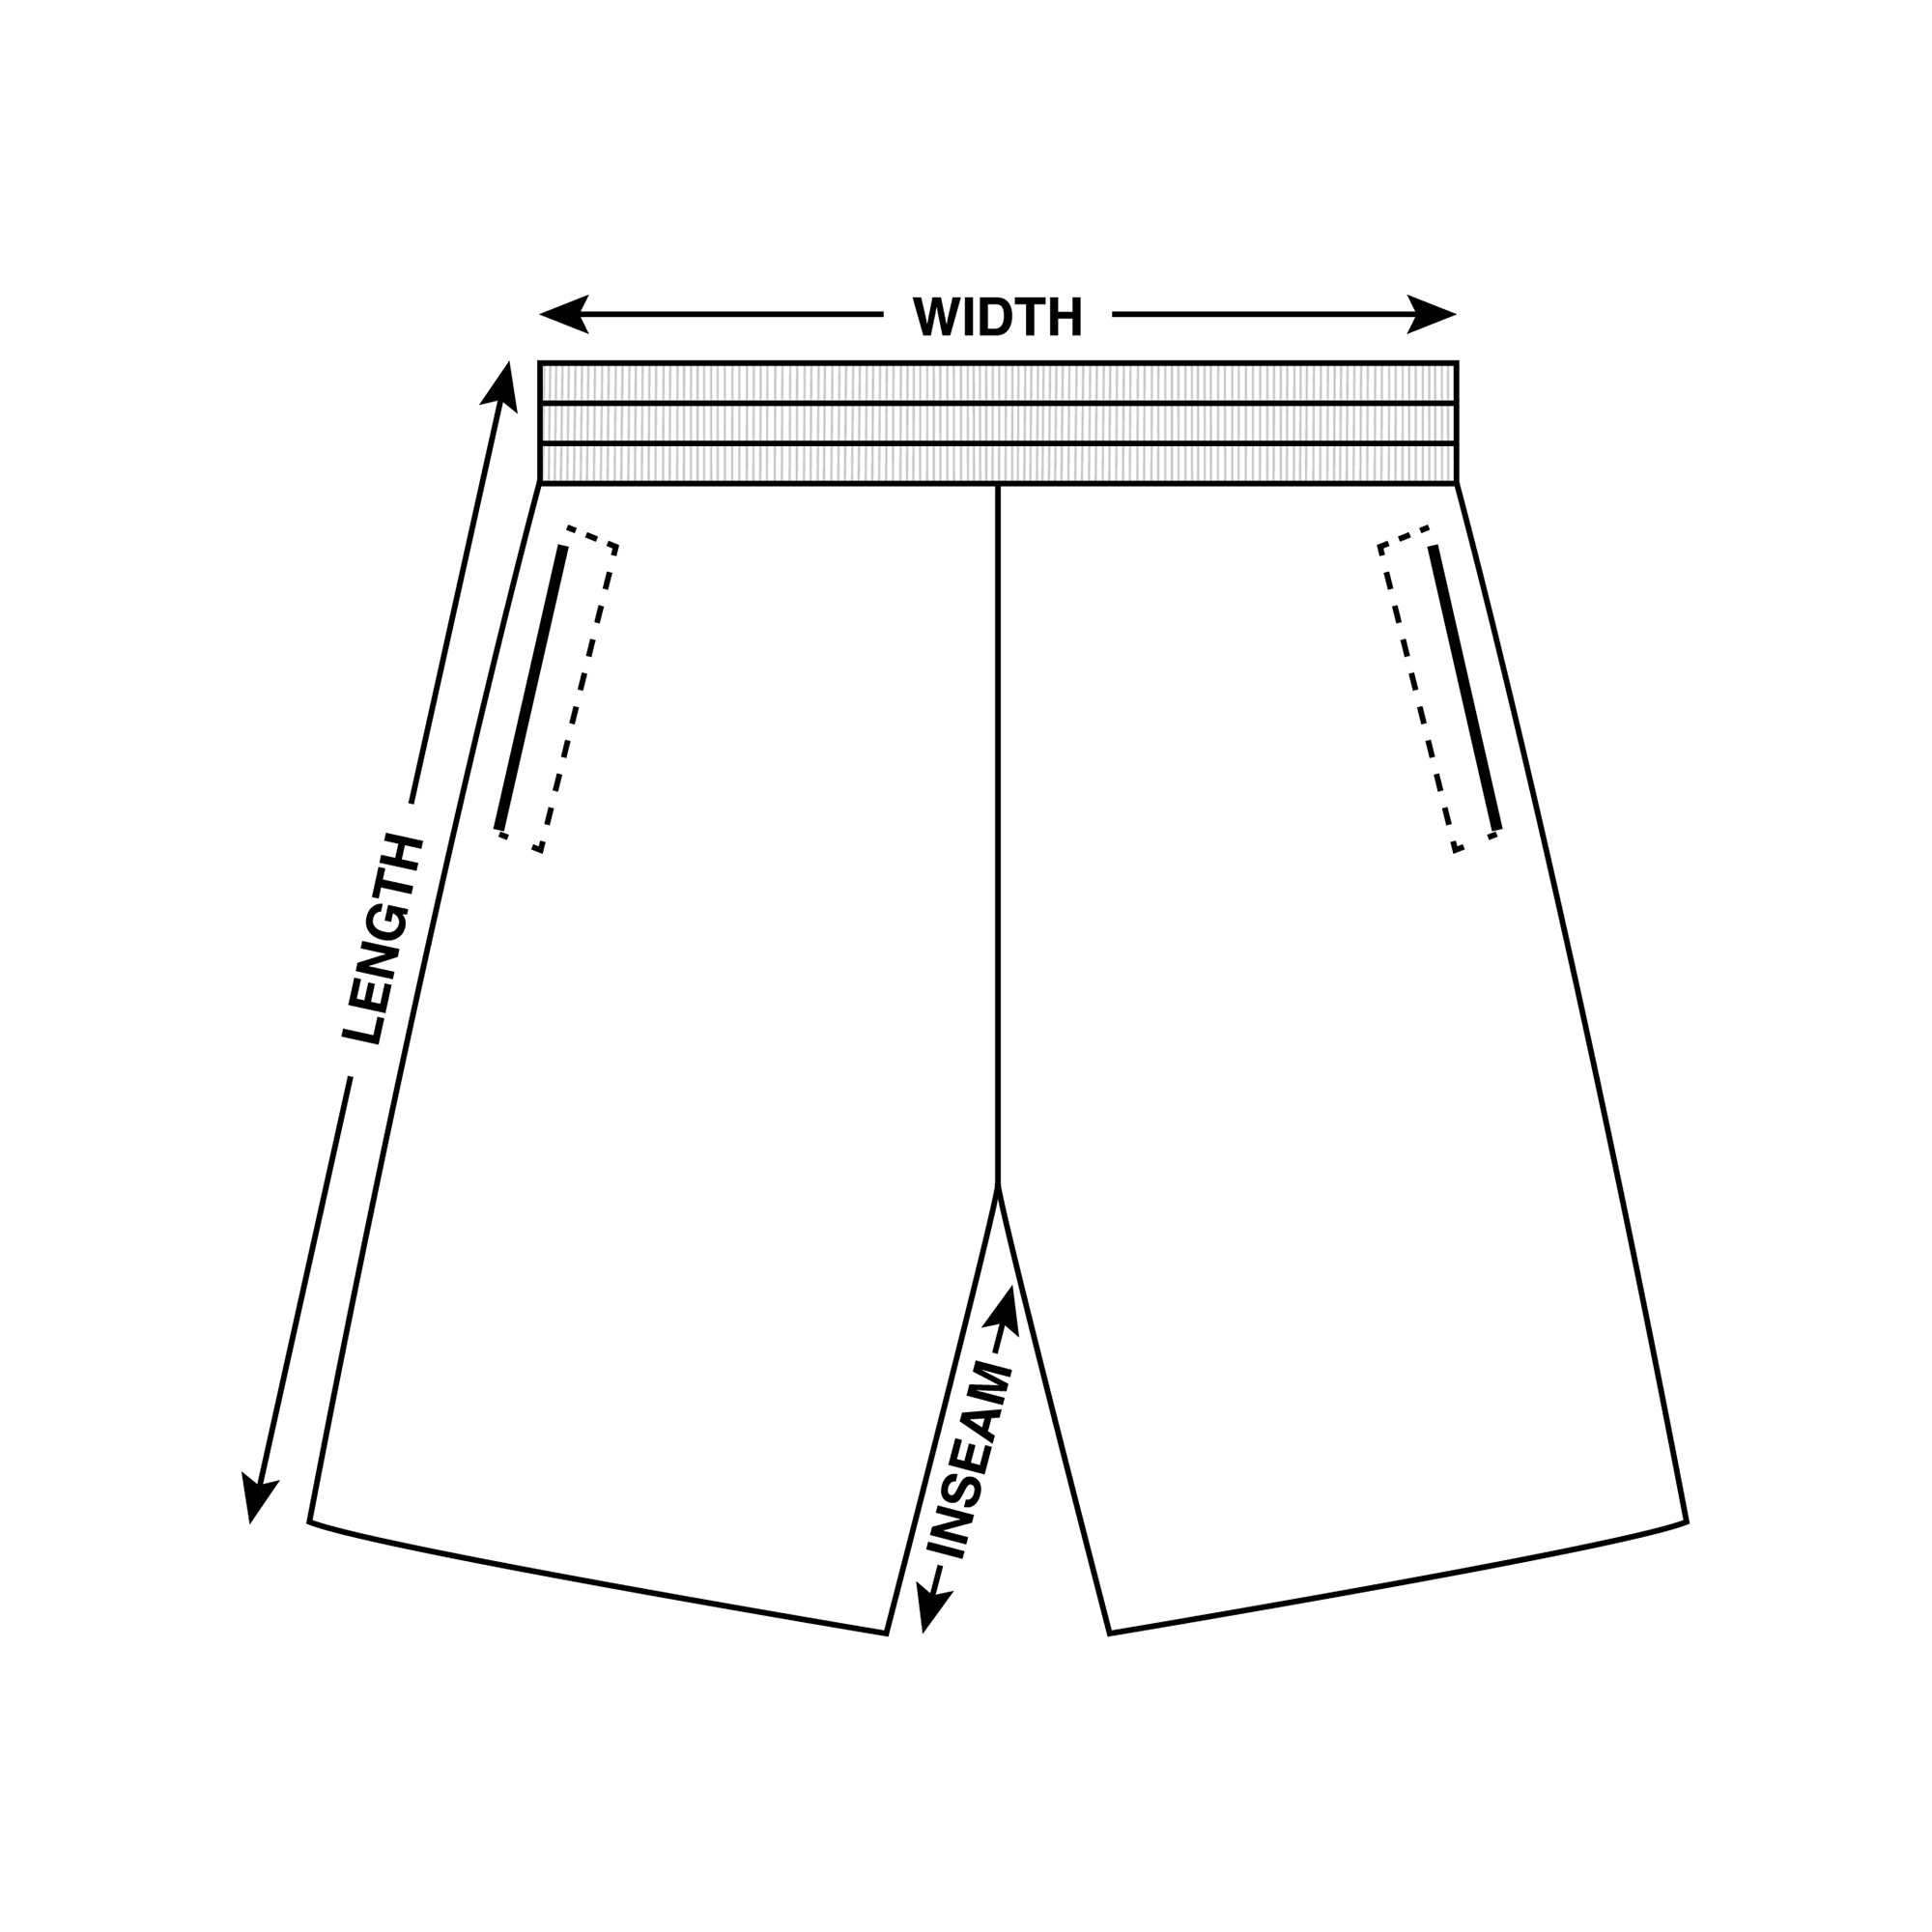 Shorts Measurements